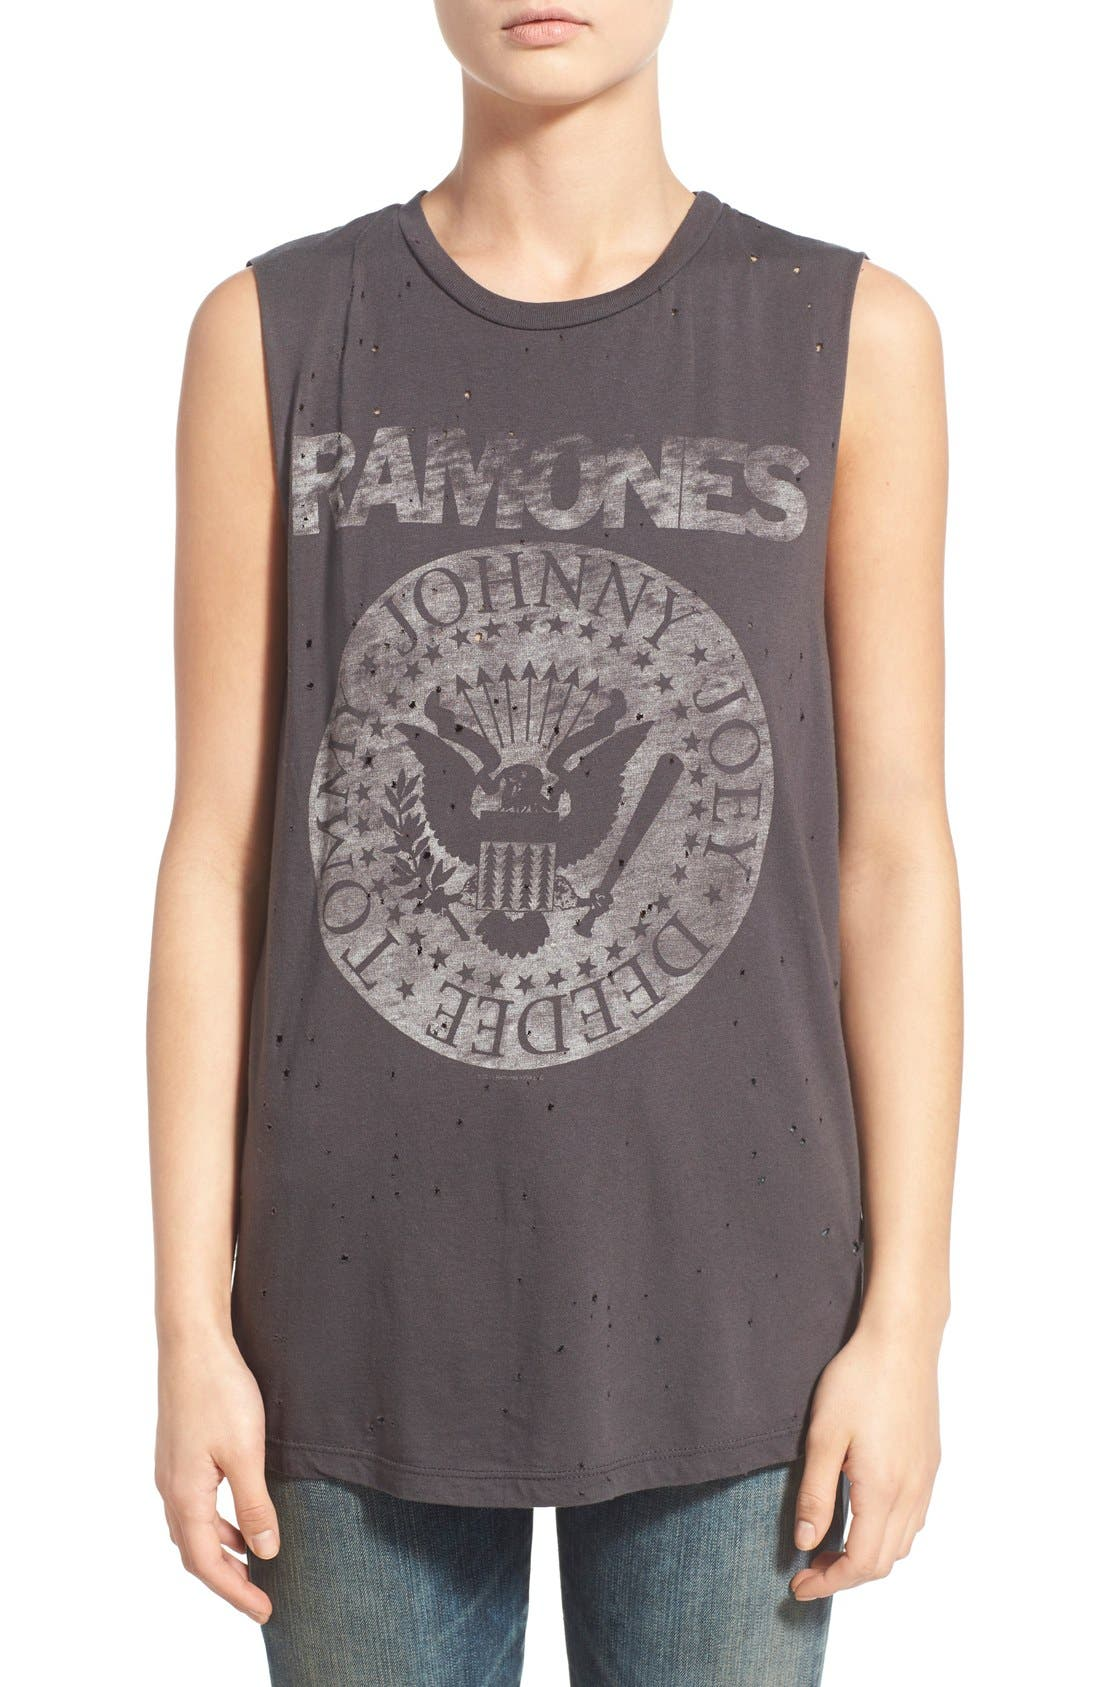 Alternate Image 1 Selected - Daydreamer 'The Ramones' Oversize Graphic Muscle Tee